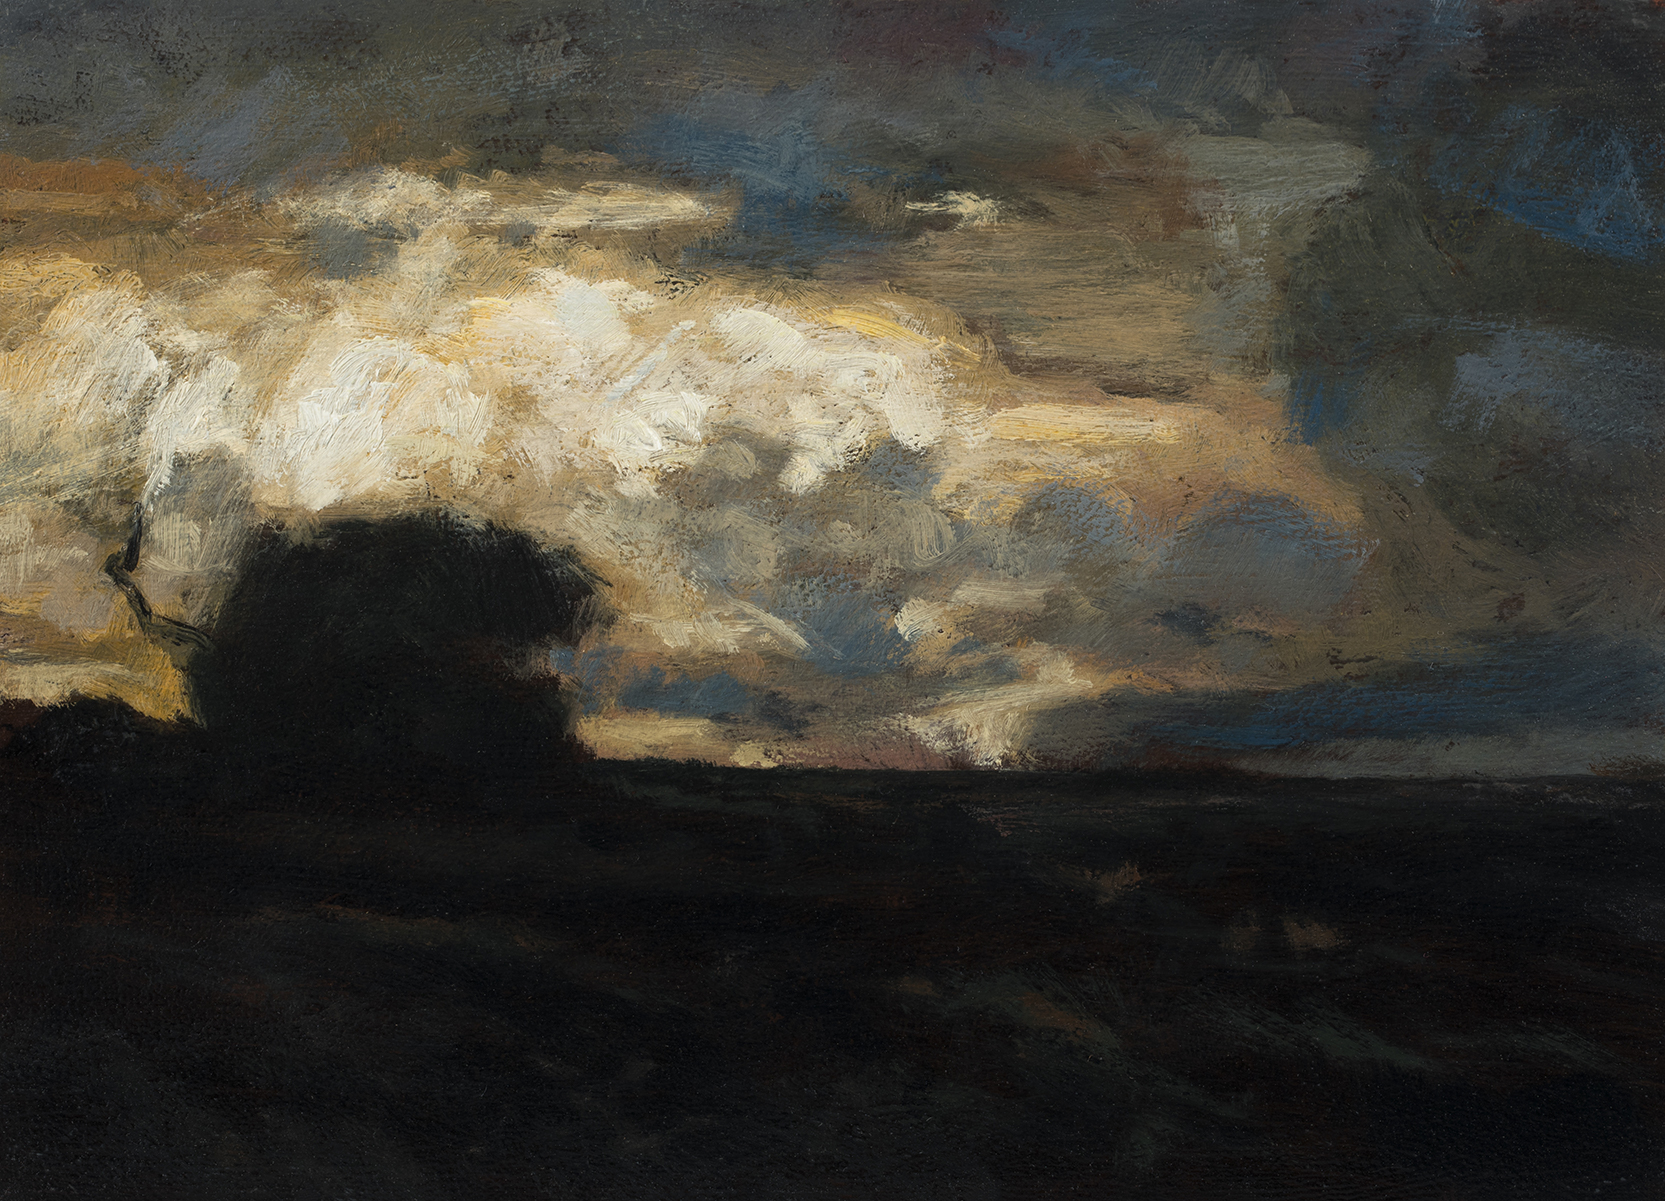 Study after: John Francis Murphy- Landscape by M Francis McCarthy - 5x7 Oil on Wood Panel